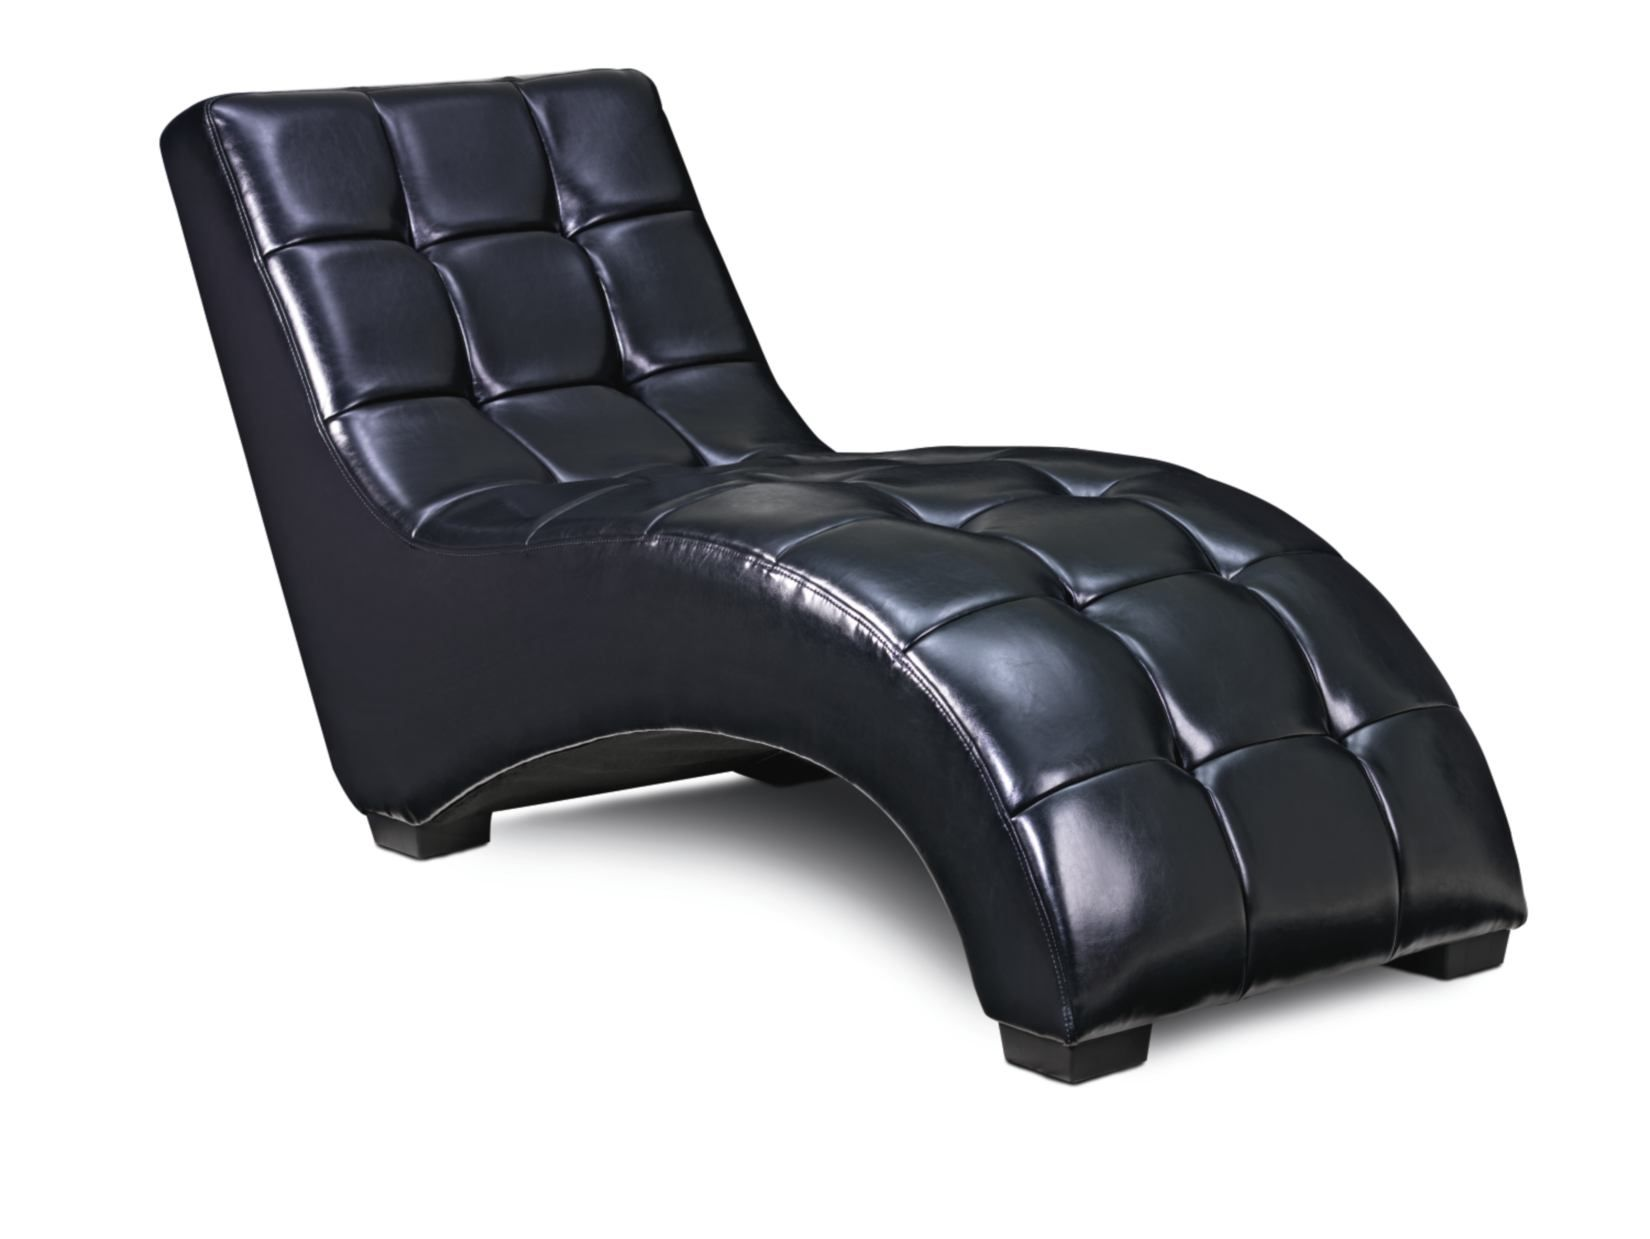 Pleasing Maxim Black Chaise Value City Furniture In 2019 Value Ibusinesslaw Wood Chair Design Ideas Ibusinesslaworg